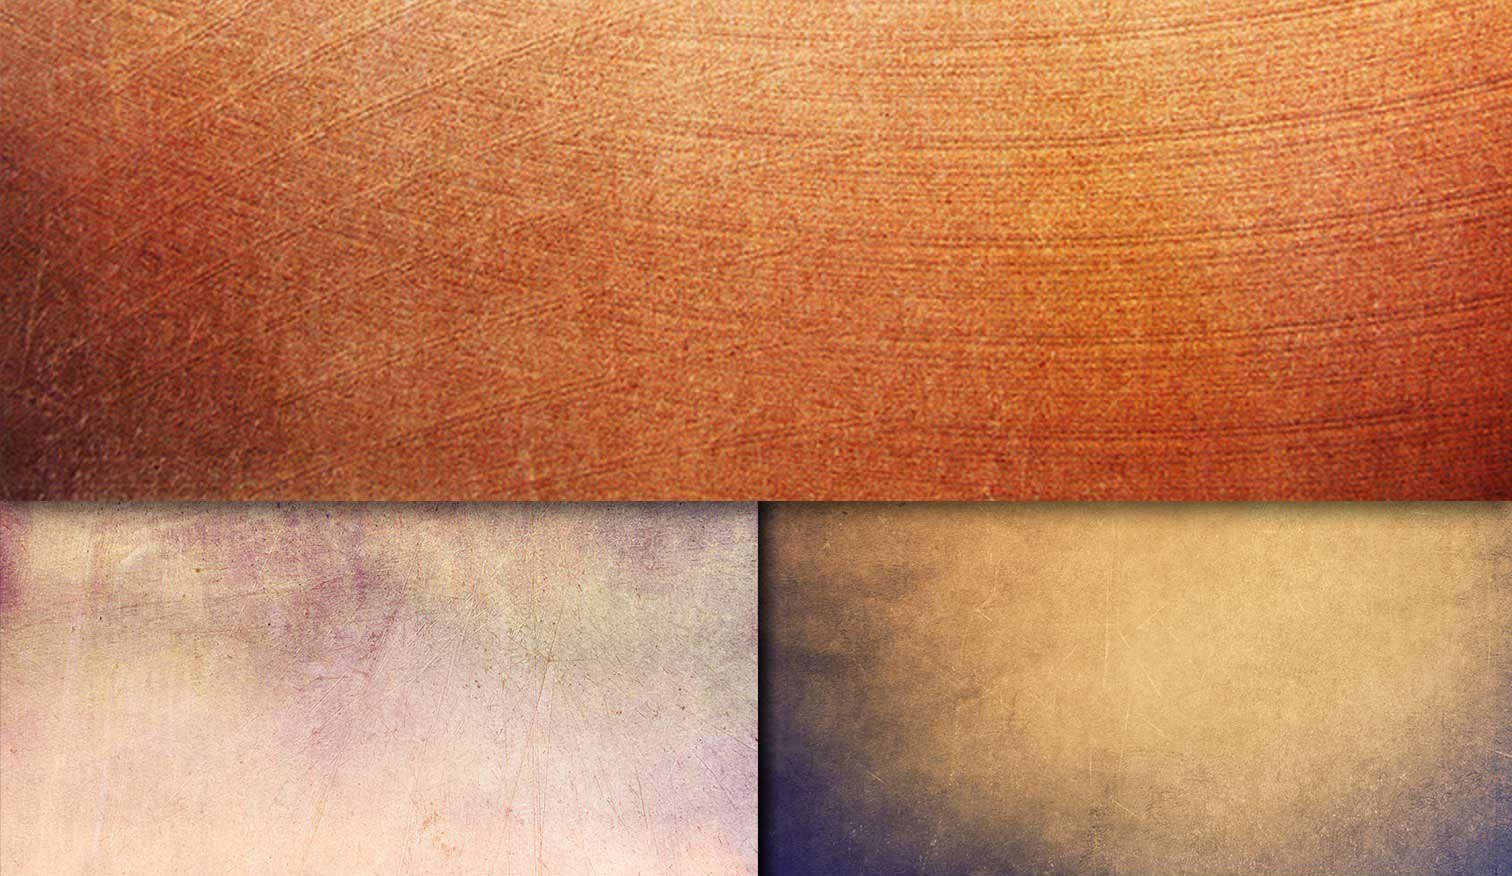 Download 25 Colorful Grunge Textures